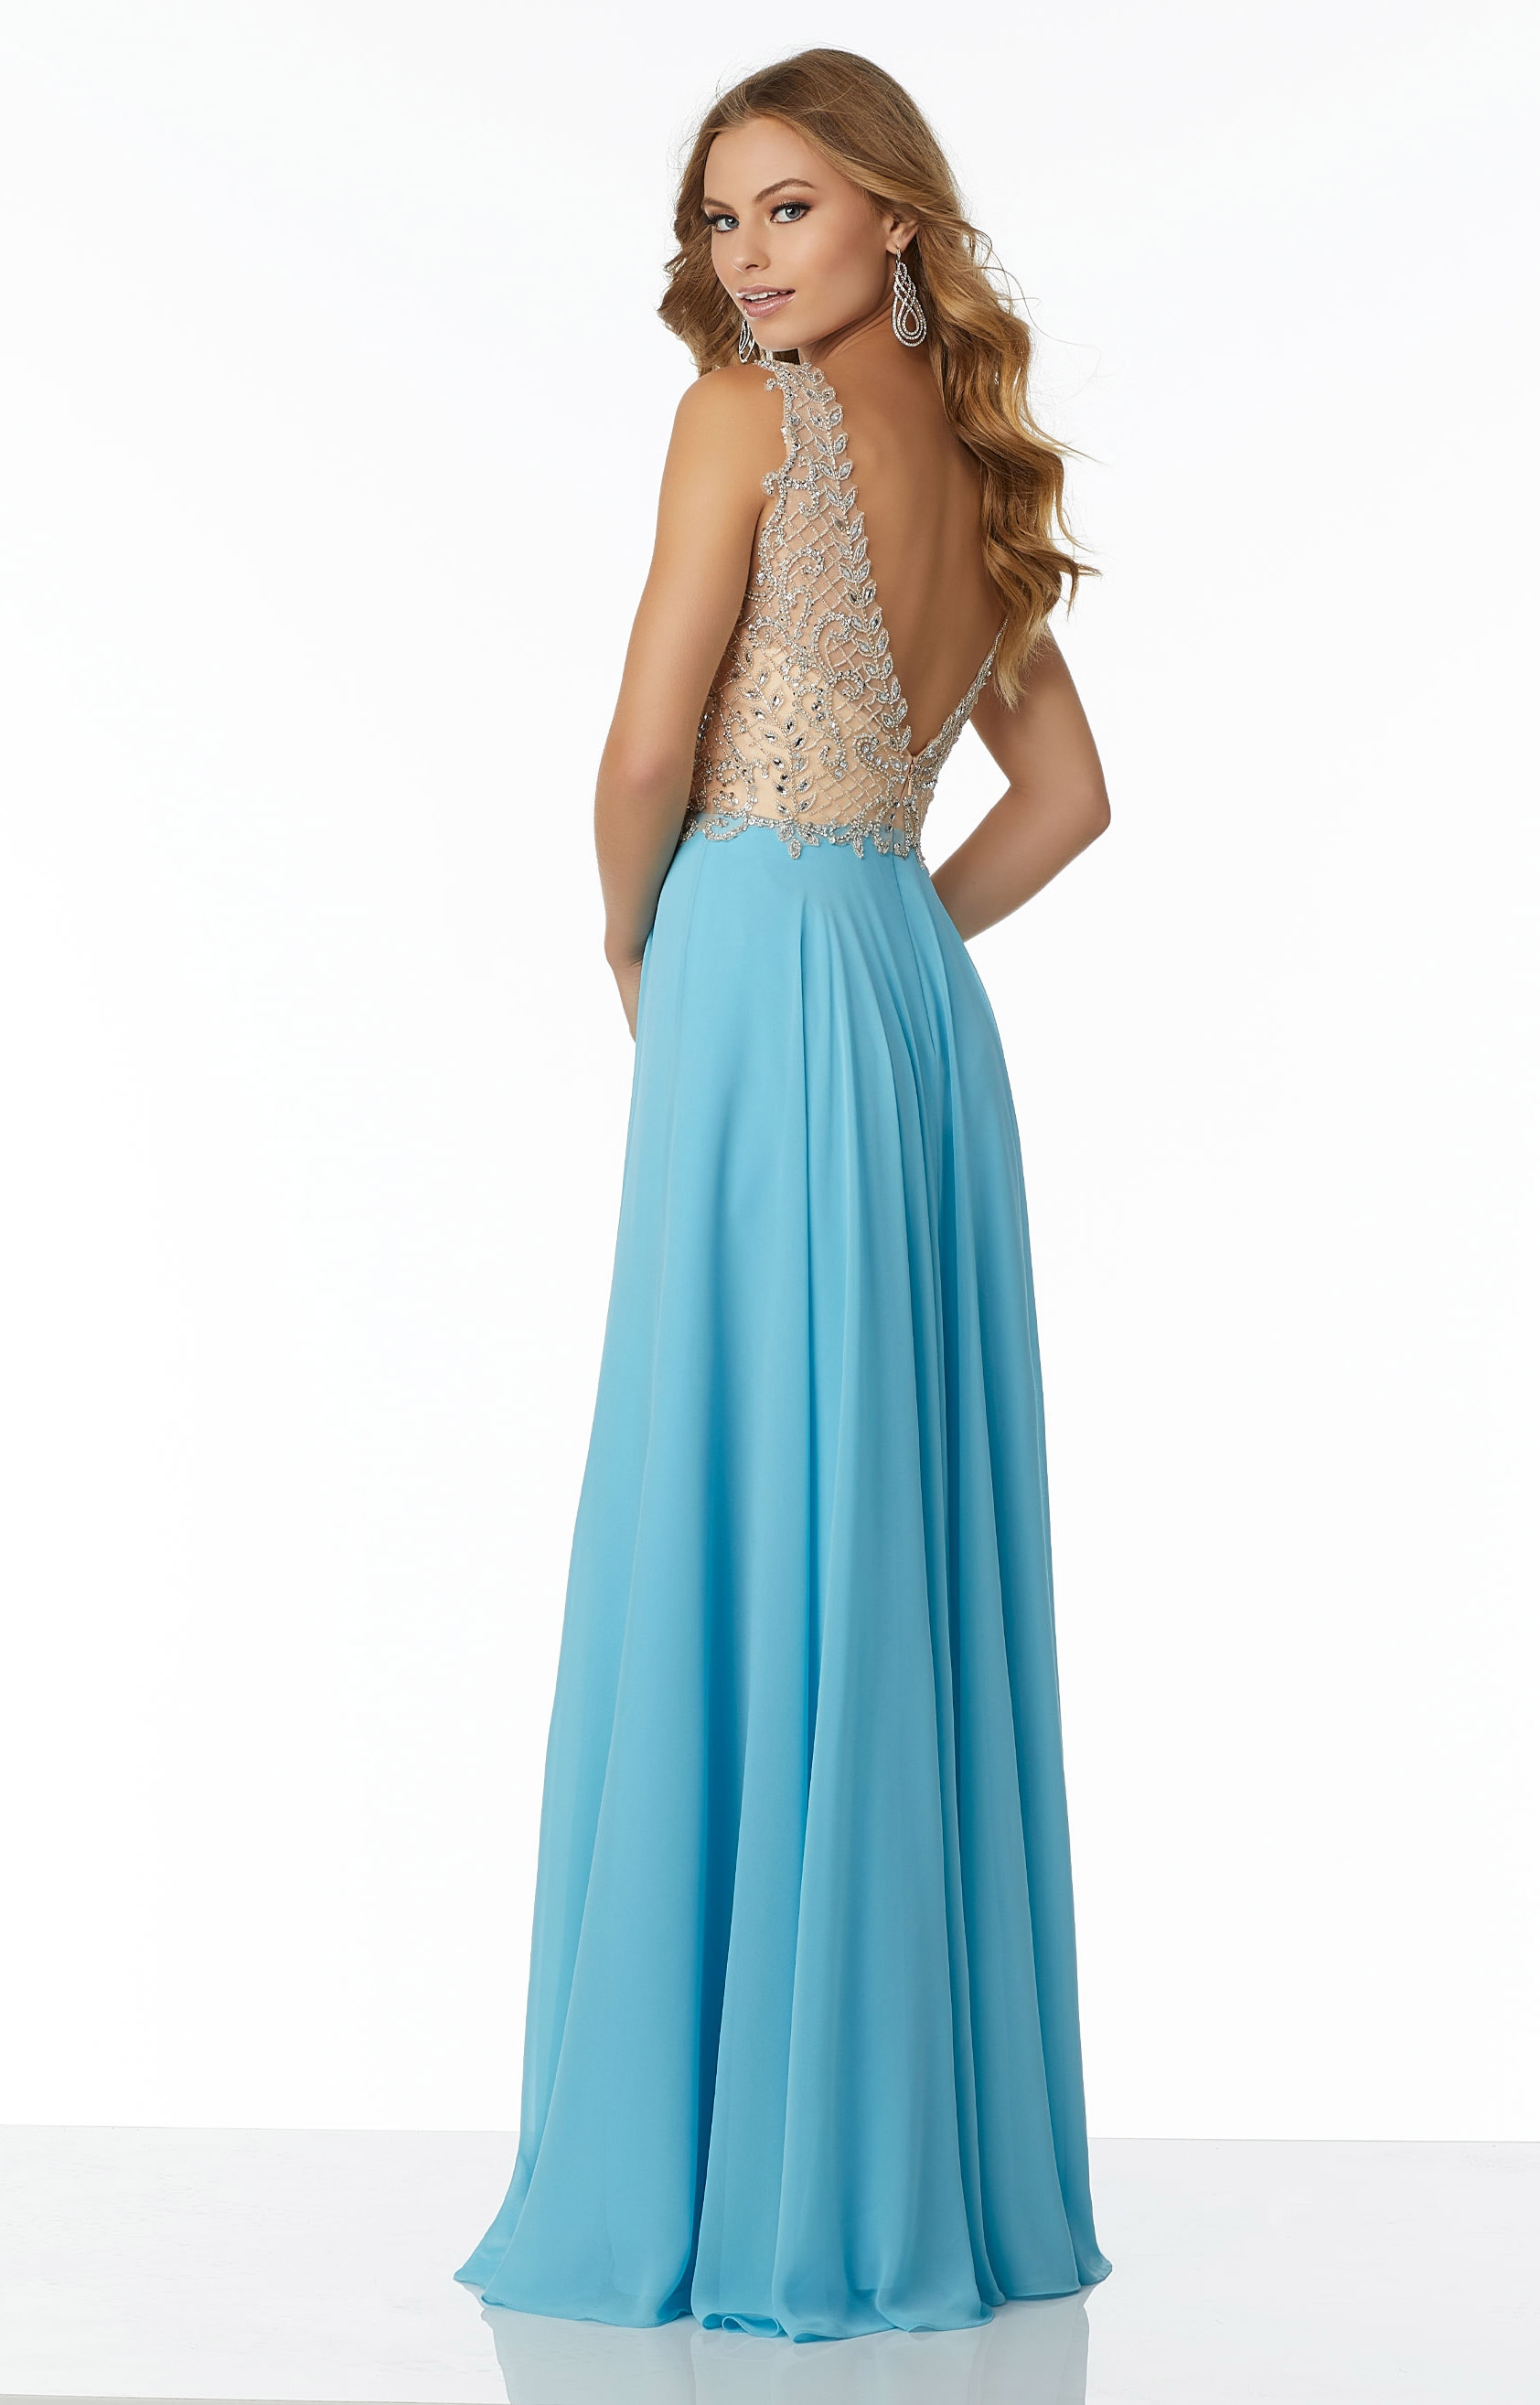 Mori Lee Prom 42027 - V-Neck A-Line Chiffon Prom Dress